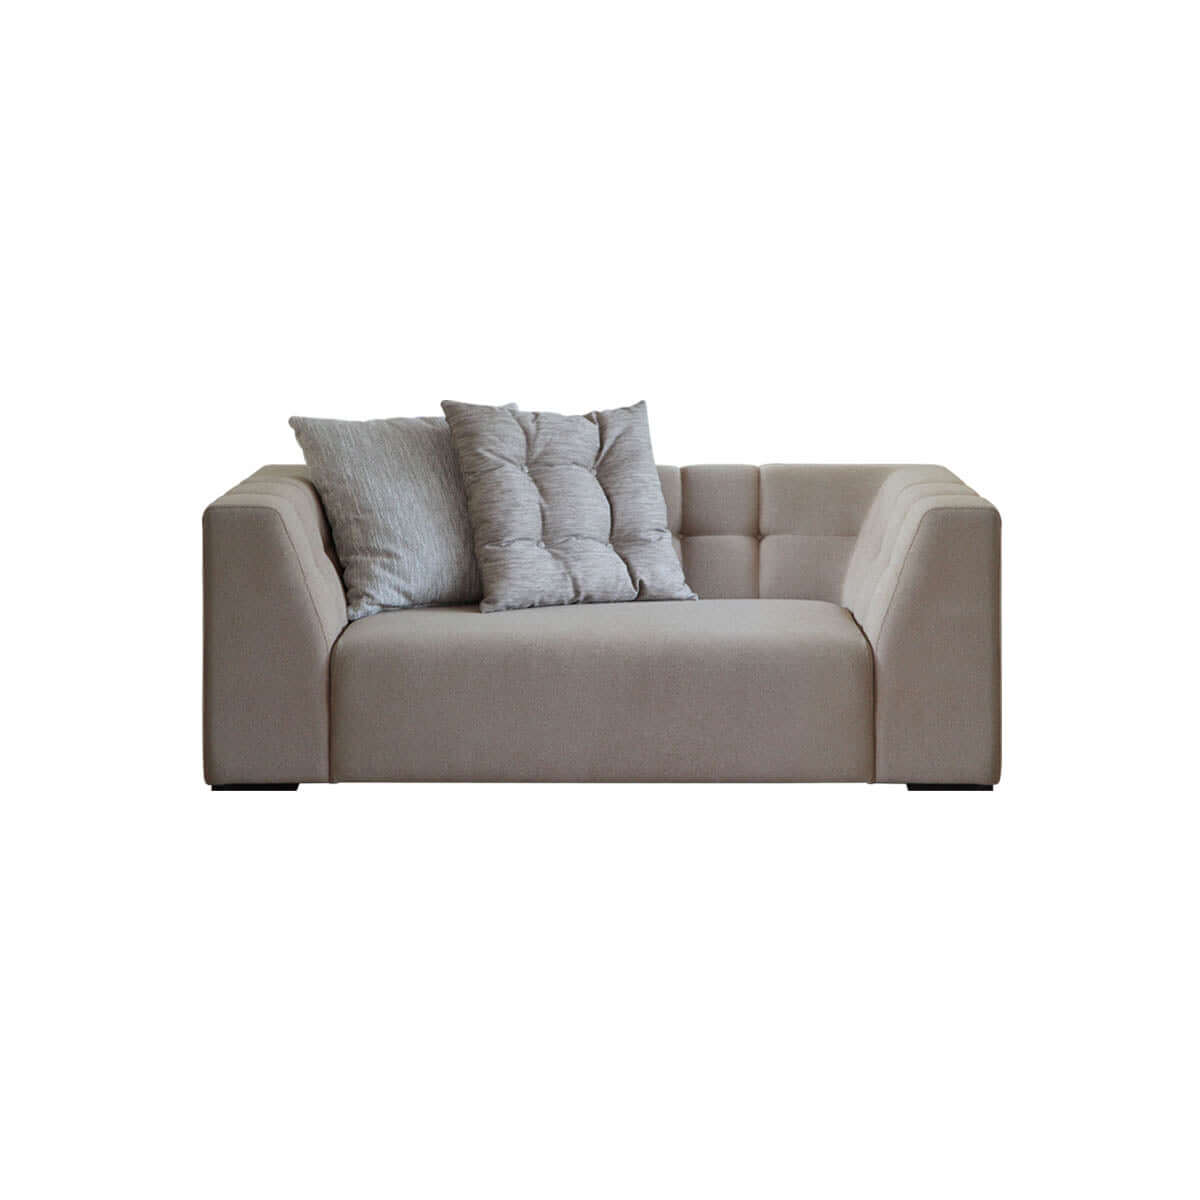 2 seat stylish sofa